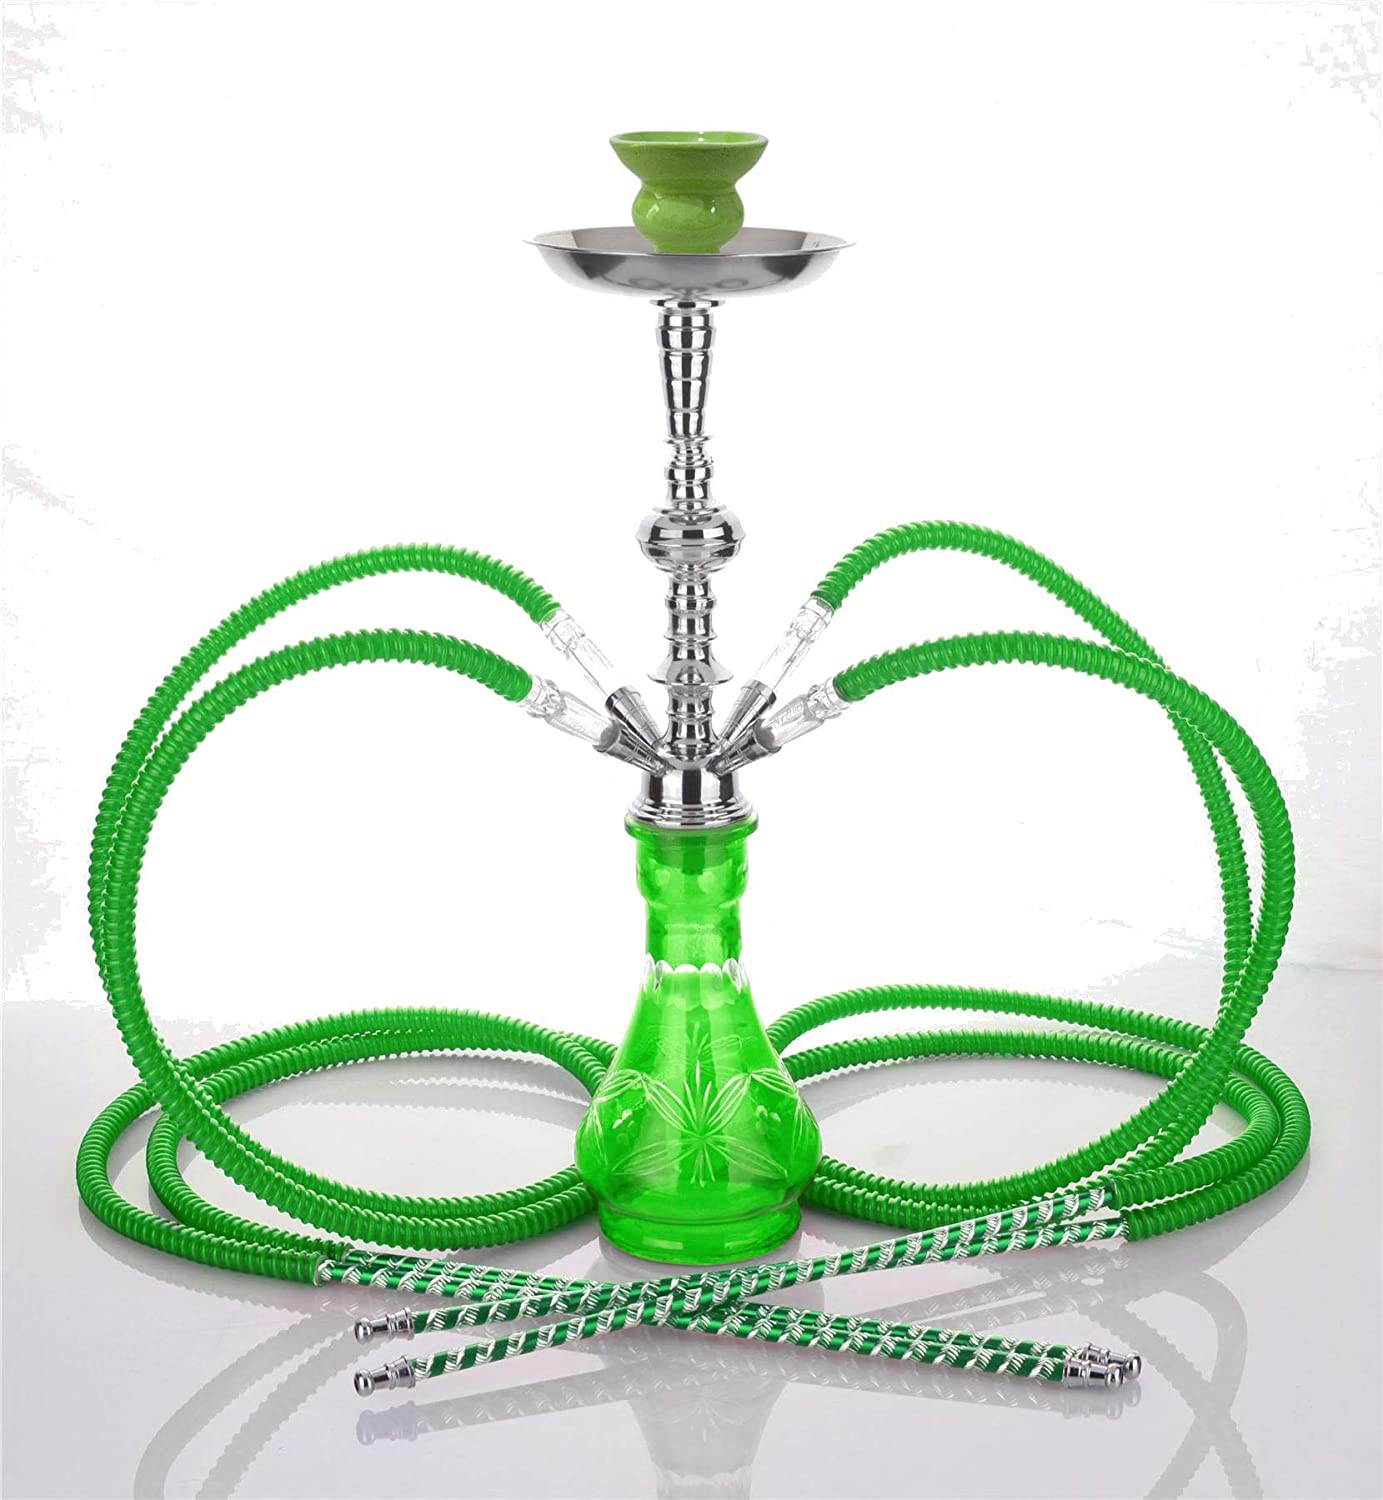 Medium Green 4 Hose hooka - no Tobacco no Nicotine sheesha - no Tobacco no Nicotine Pipe hooka - no Tobacco no Nicotine